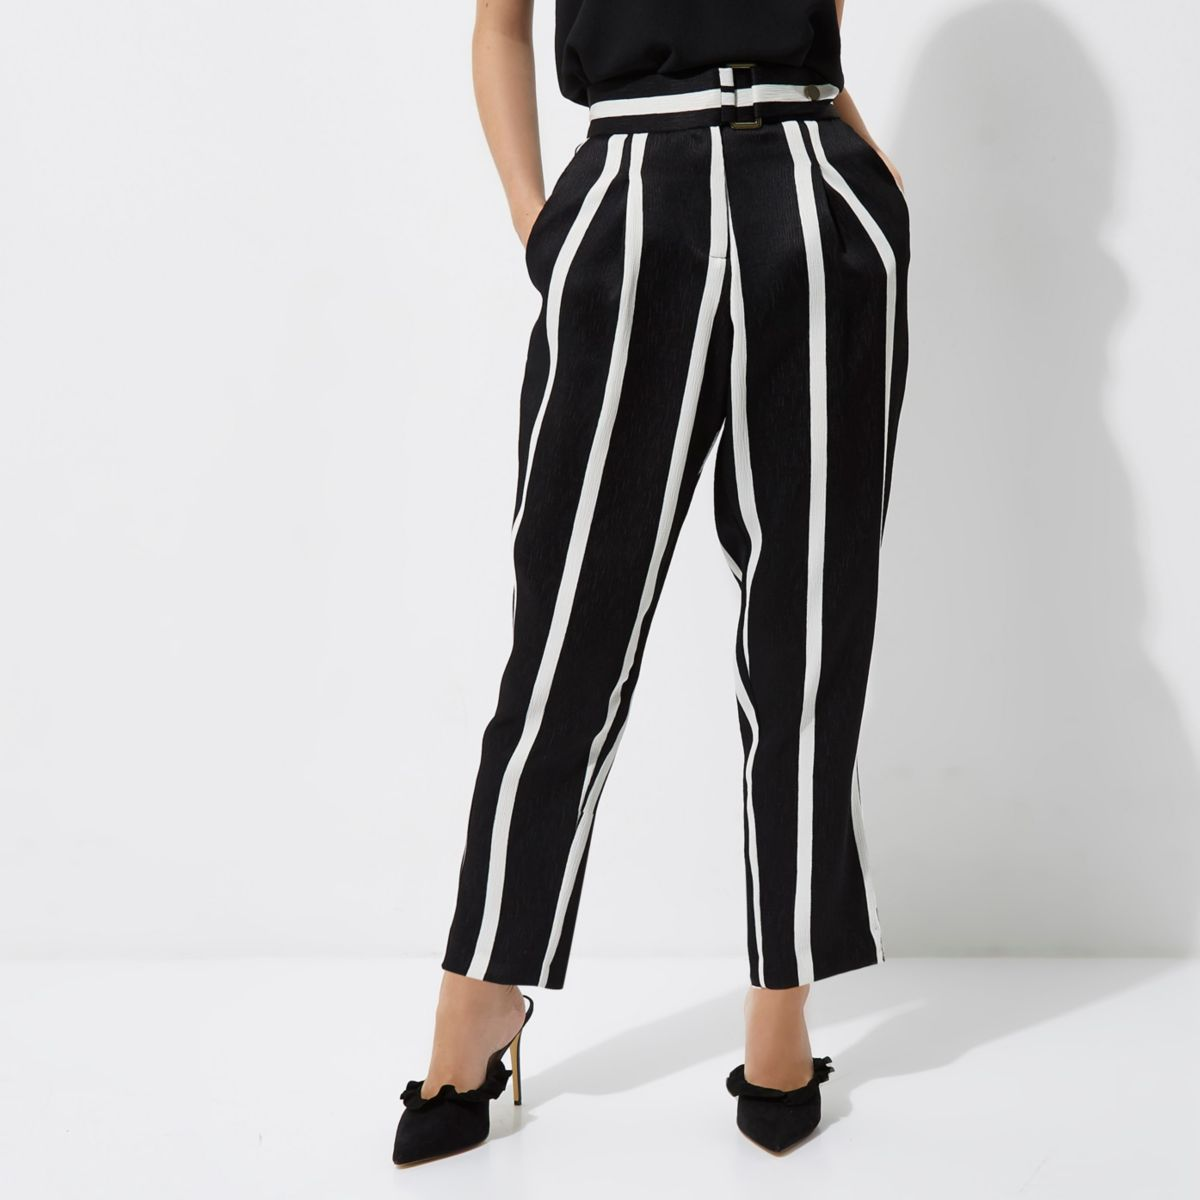 Petite Clothing Sale Find your perfectly proportioned dresses, jumpsuit, jumpers and more for a fraction of the price. Shop petite clothing for less with boohoo. Refine by Gender Female Clear Done Category Coats & Jackets Co-ordinates Dresses Jeans Jumpsuits Knitwear Lingerie Nightwear Pants .